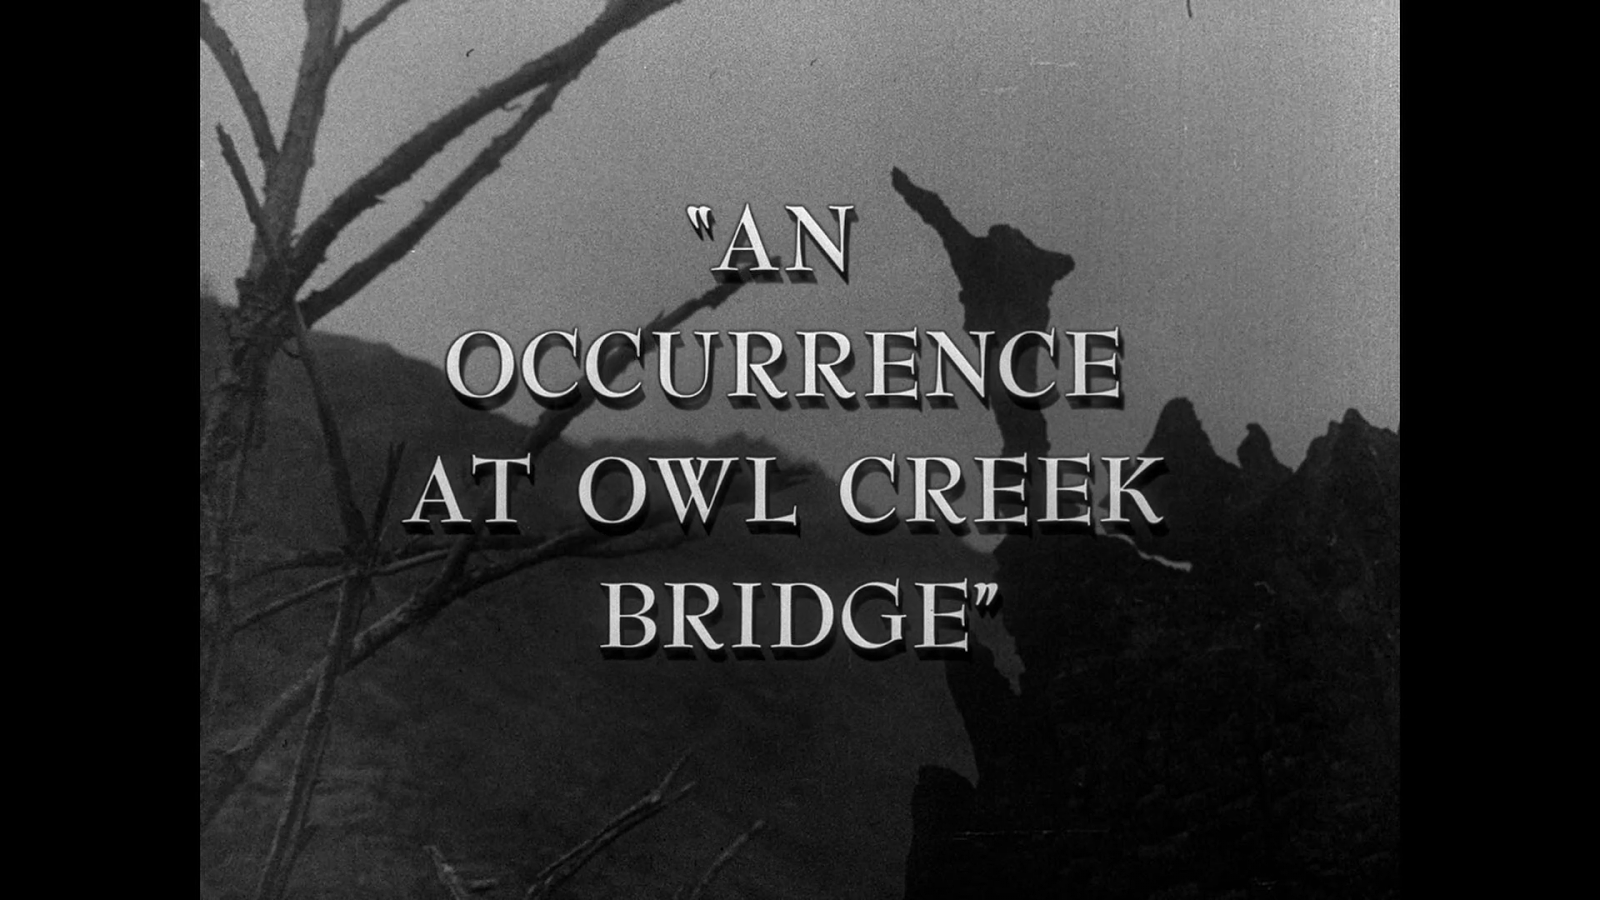 in an occurrence at owl creek An occurrence at owl creek bridge by ambrose bierce - short story by ambrose  bierce, published in 1891 in tales of soldiers and civilians, a collection that in.